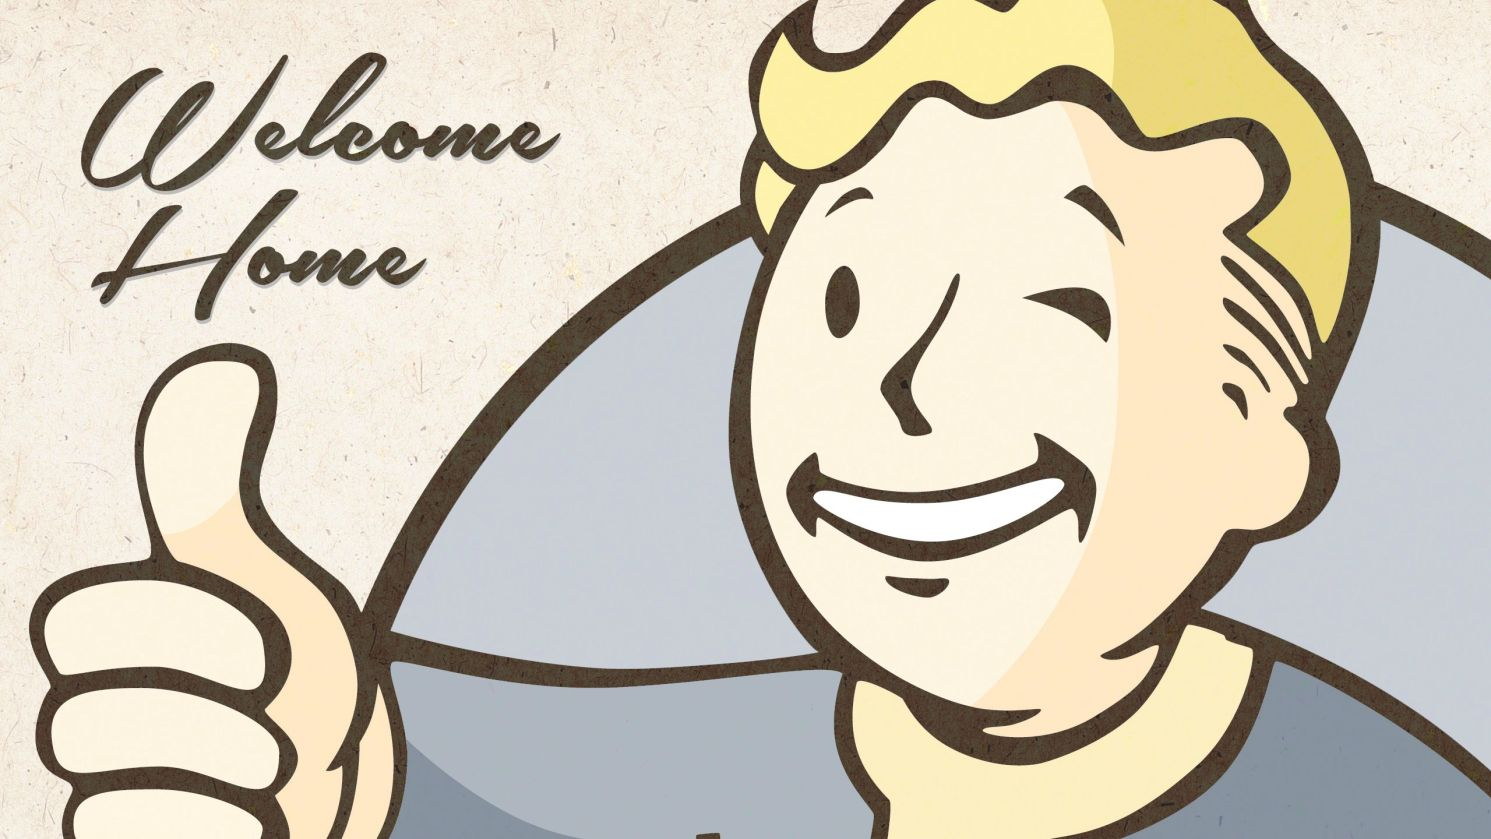 Fallout 76 Welcome